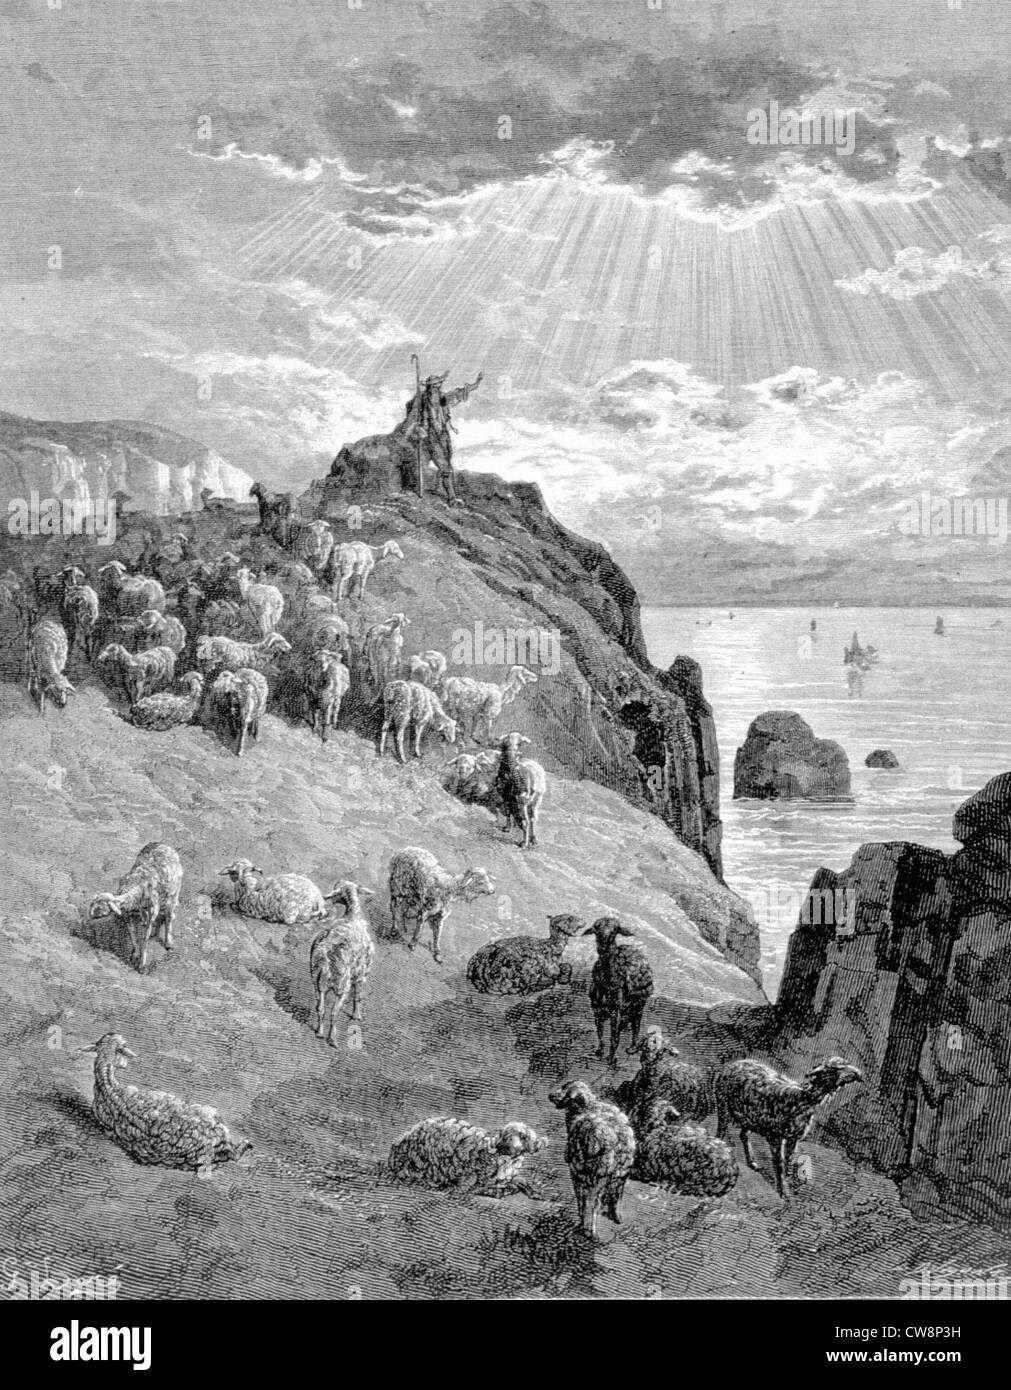 The Shepard and the Sea, La Fontaine's Fable, illustration by Gustave Doré - Stock Image